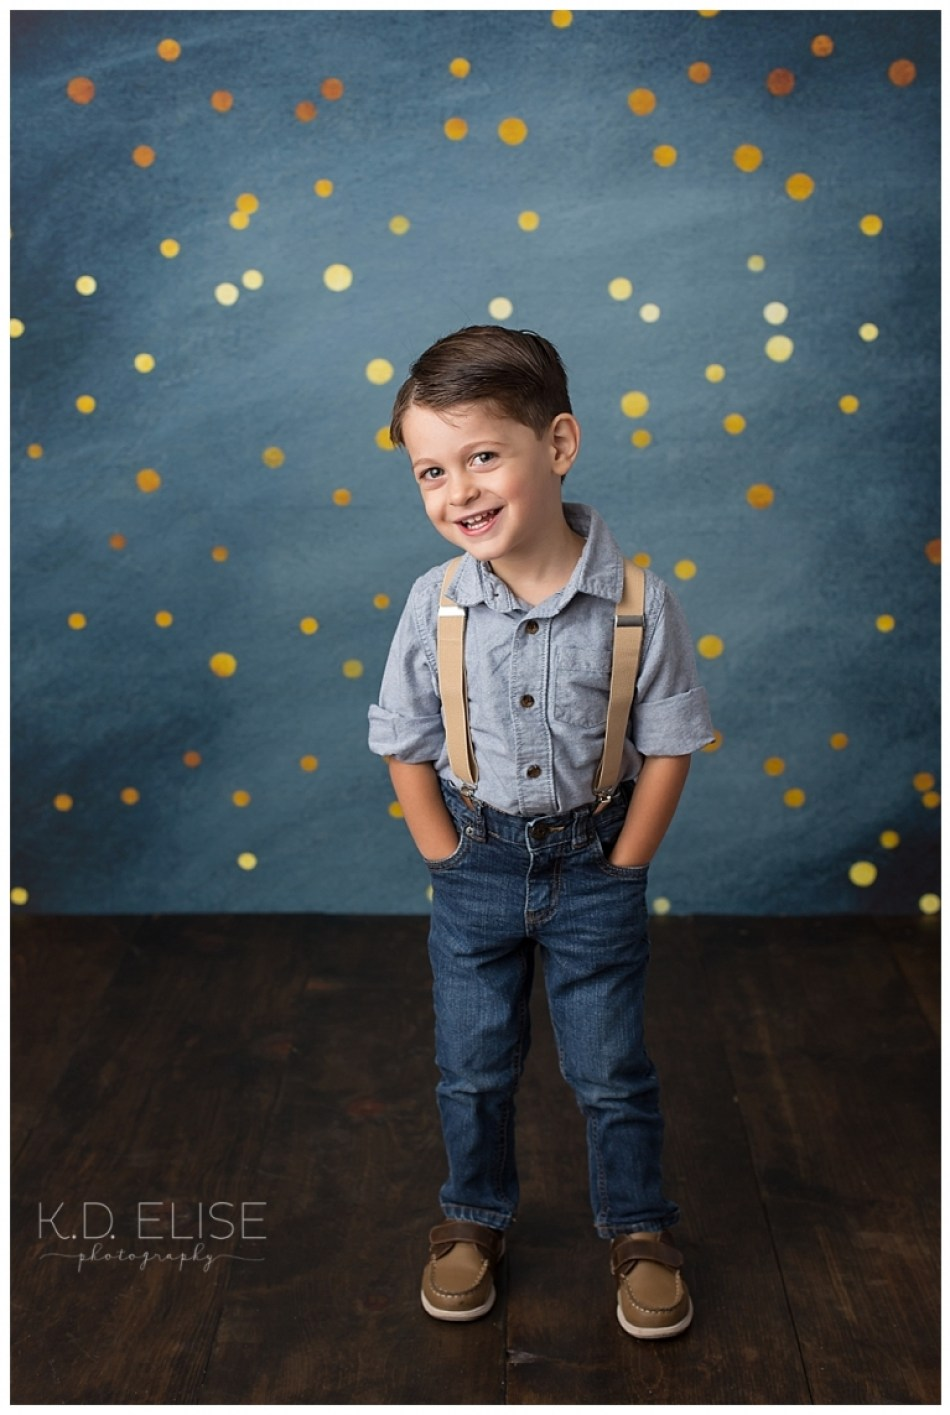 Smiling three year old boy in jeans and suspenders.